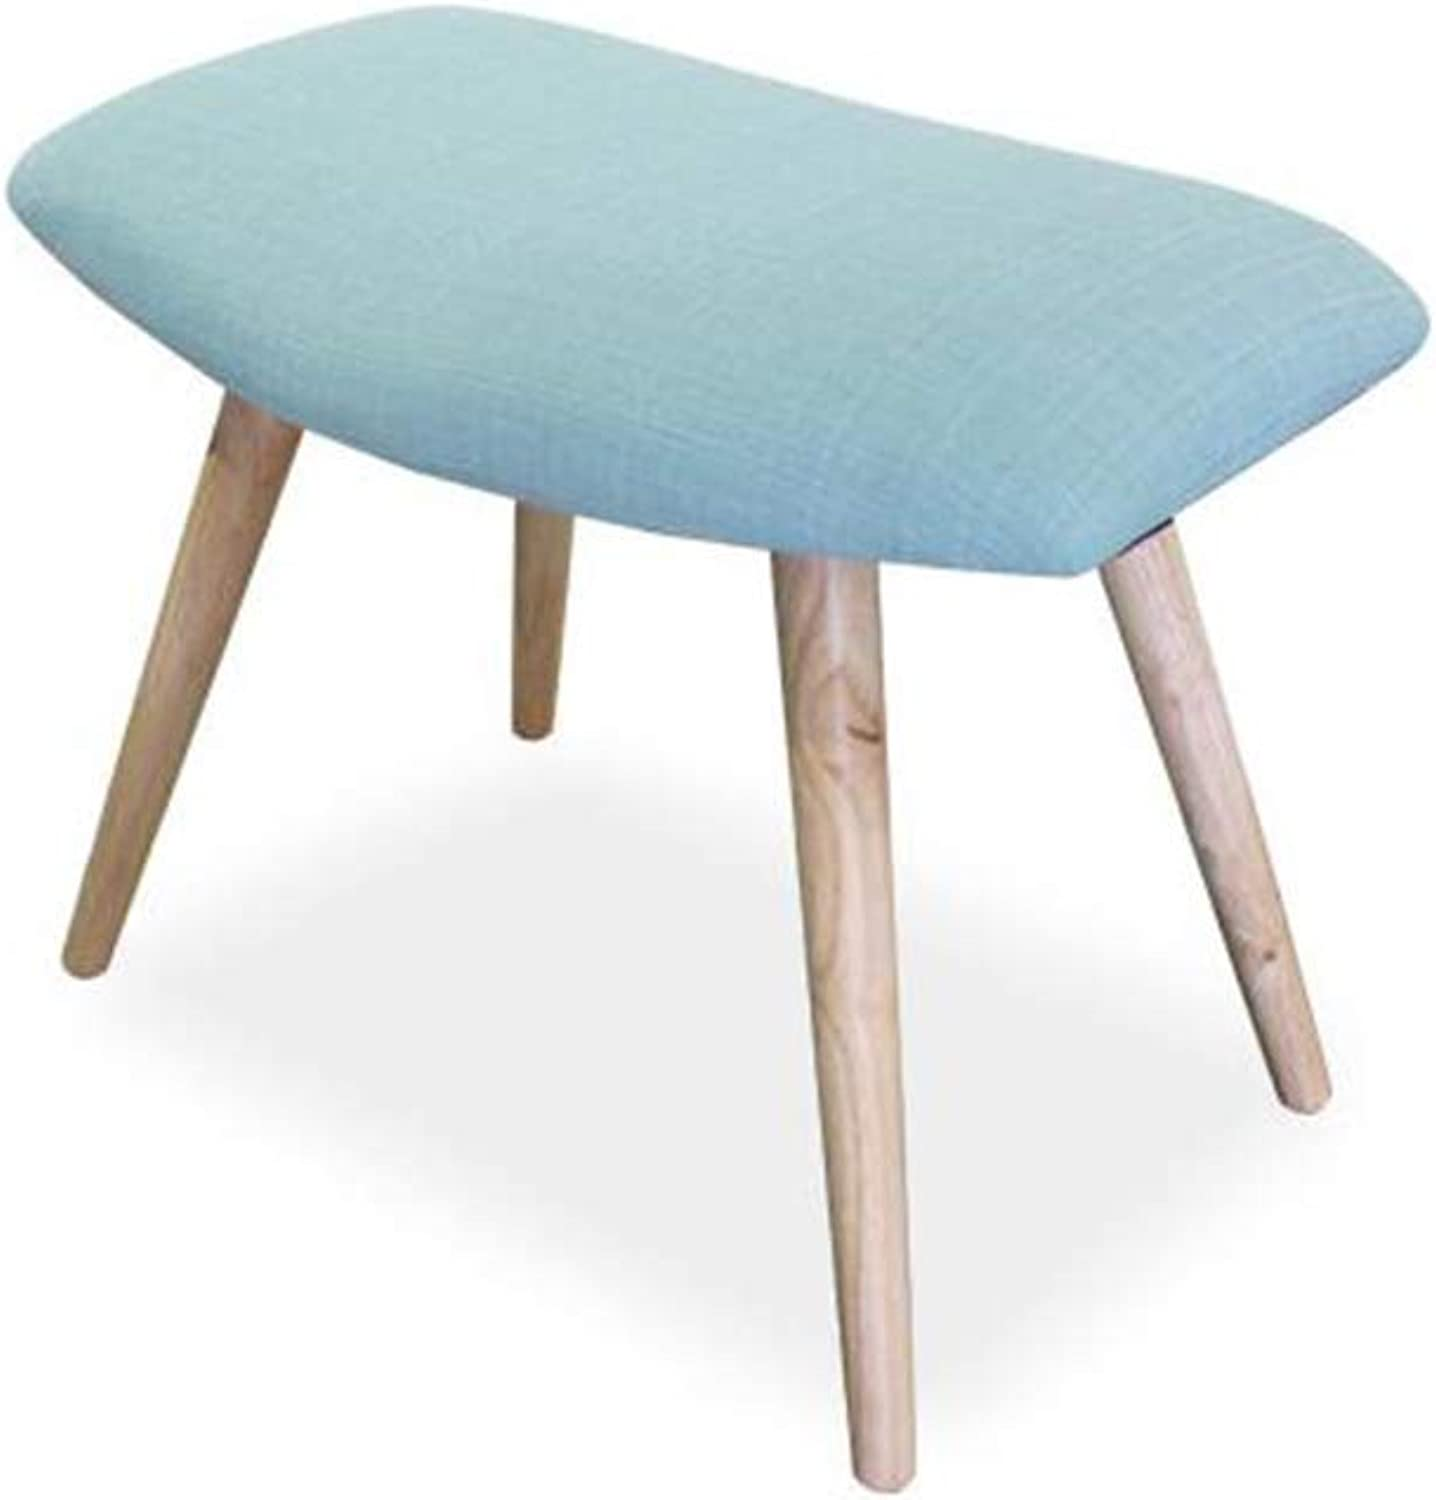 DIAOSI Xiaodengzi Sofa chair supporting squat stool Stool stool foot modern minimalist bedroom living room shoes low stool (color   bluee)